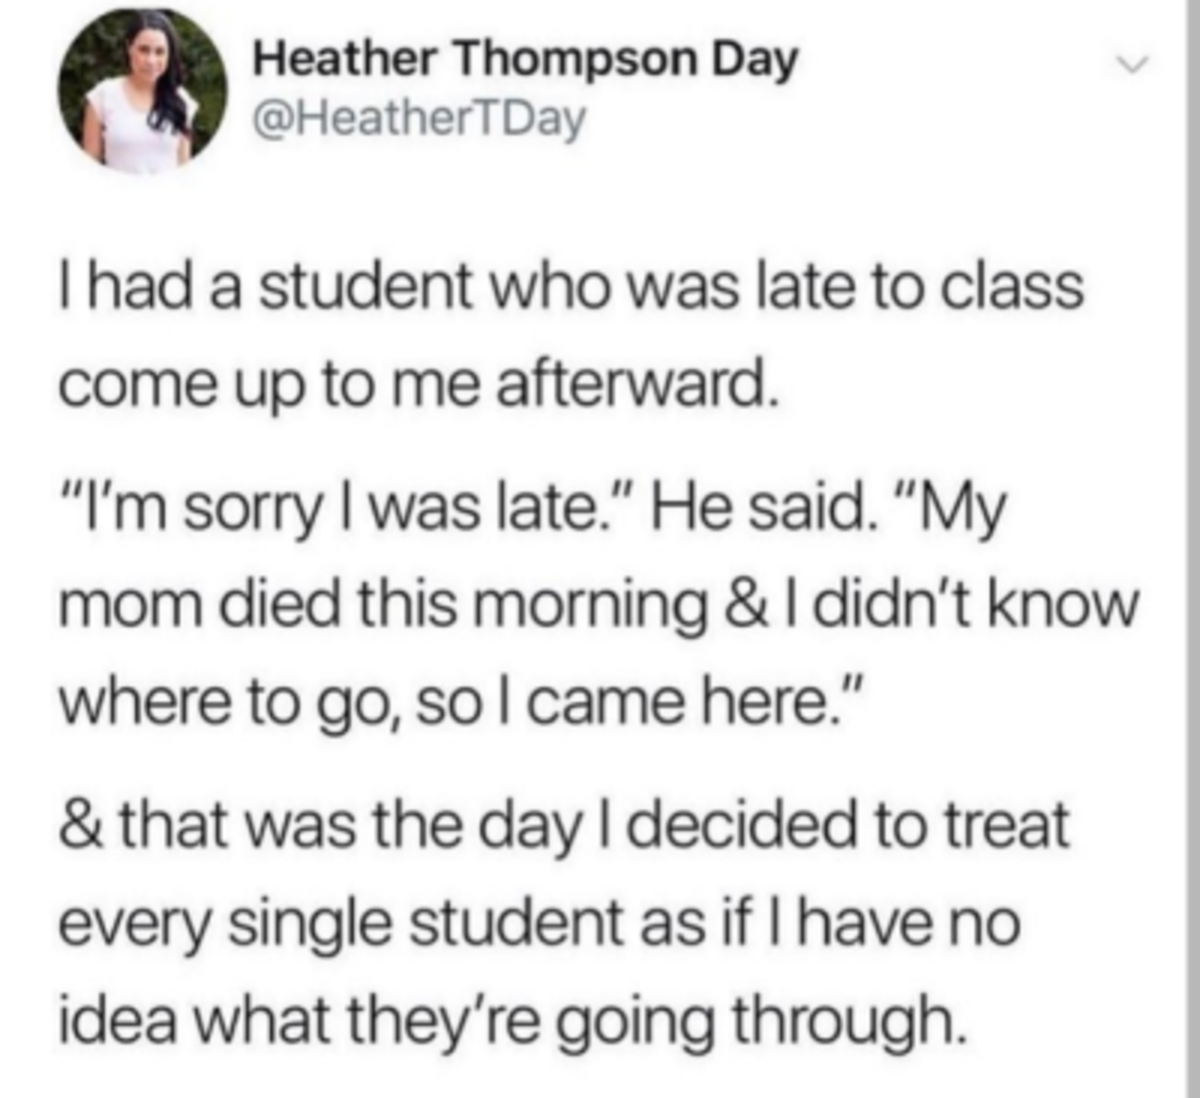 Student. .. I recall in High school, a friend of mine abroad overdozed and was found dead. It was a pretty major shock going from youtube PMs with bad grammer to this super